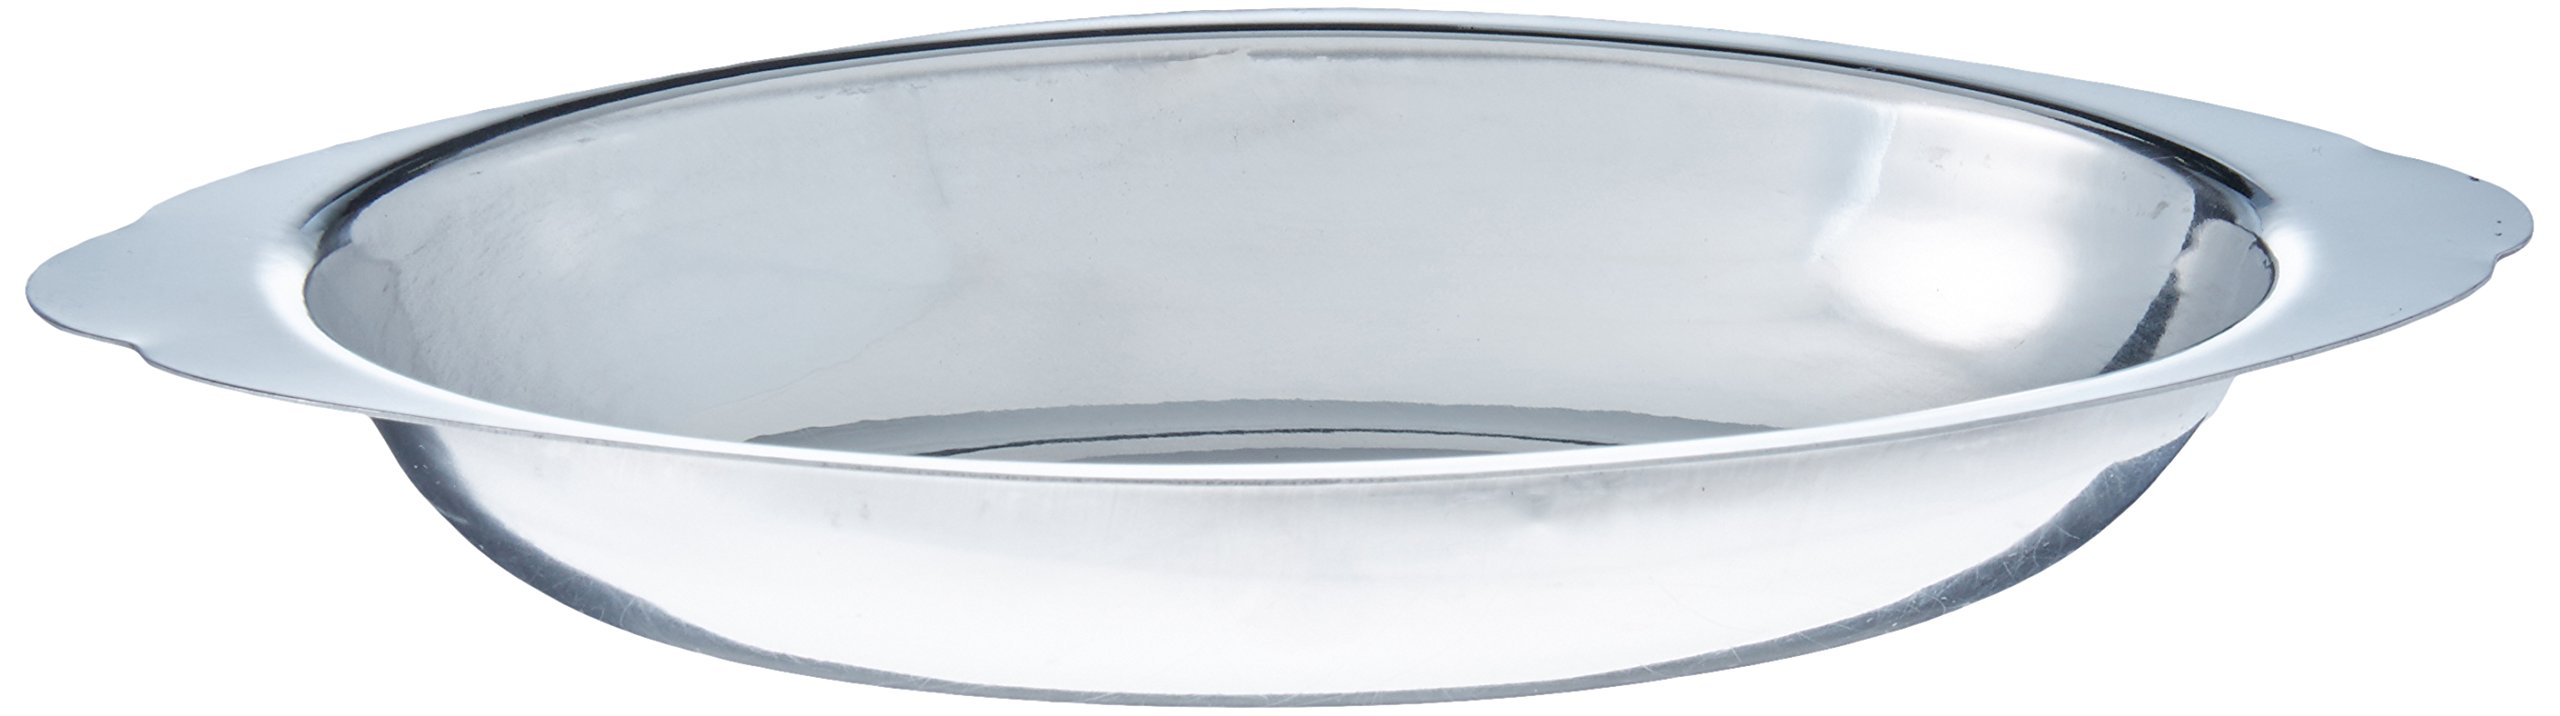 Thunder Group SLGT008 Oval Au Gratin Dish, 8-Ounce